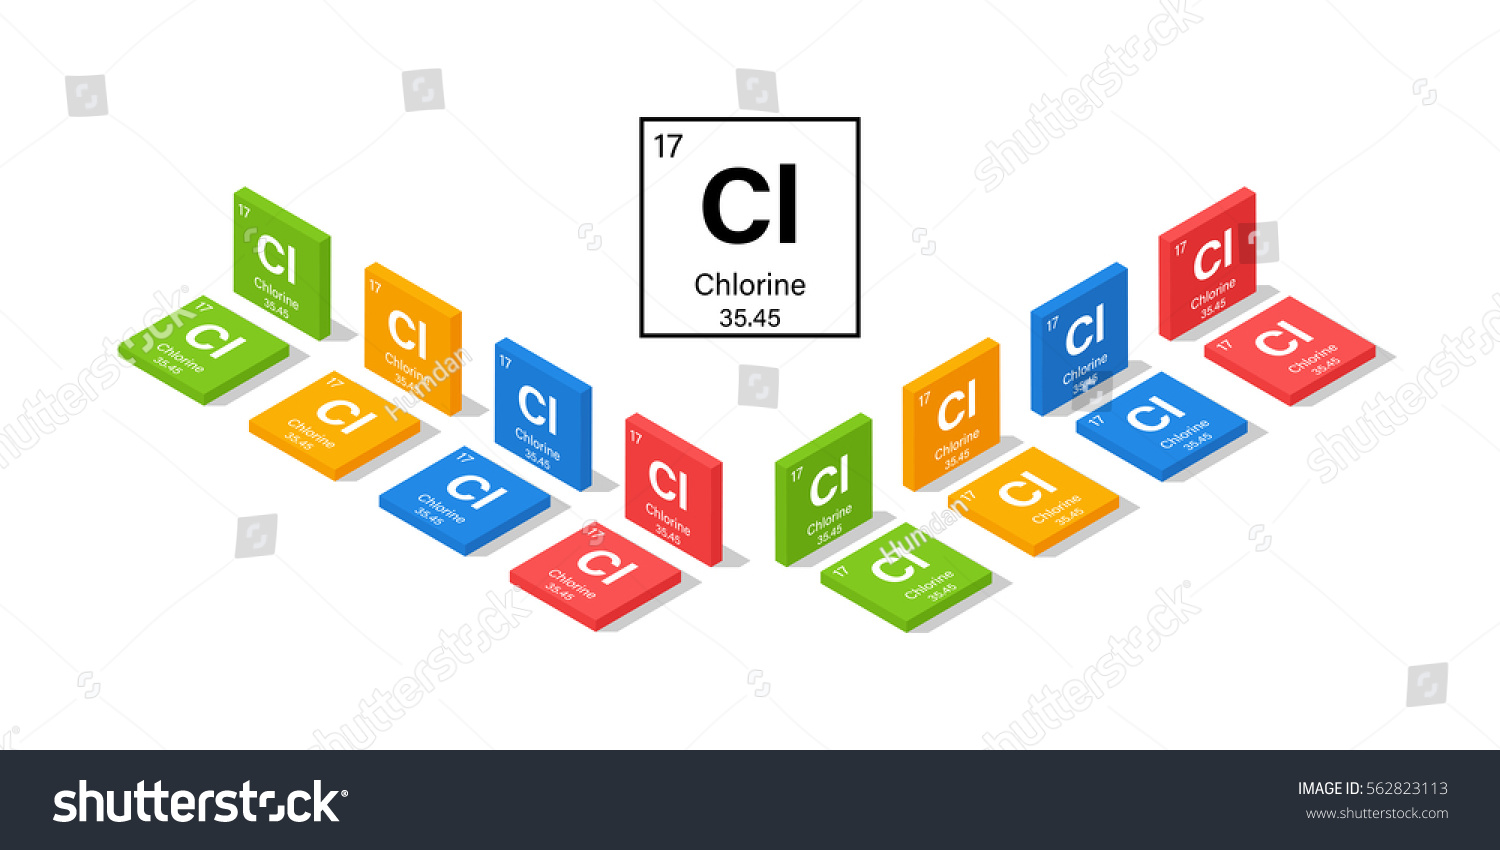 Elements periodic table chlorine 3d isometric stock vector elements in the periodic table chlorine 3d isometric style vector illustration gamestrikefo Images